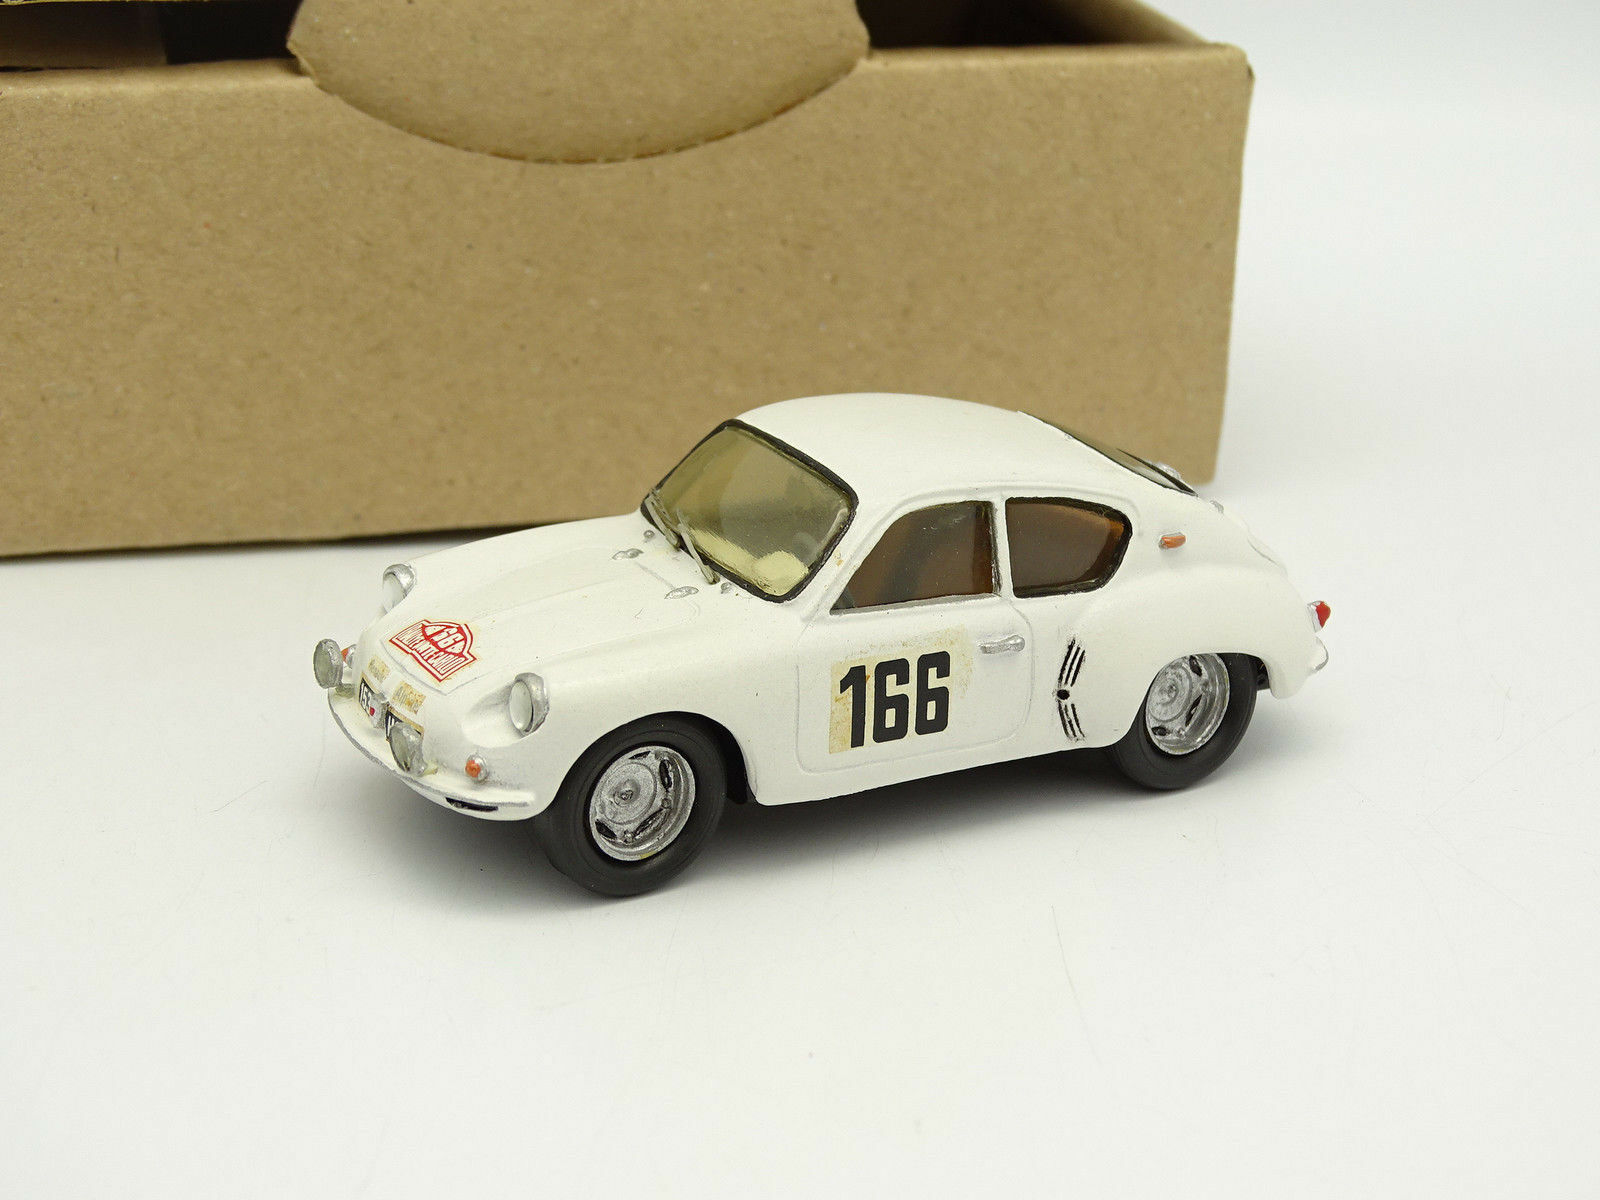 Jielge Kit Assembled 1 43 - Alpine Renault A106 Rally Mounted Carlo 1960 no.166